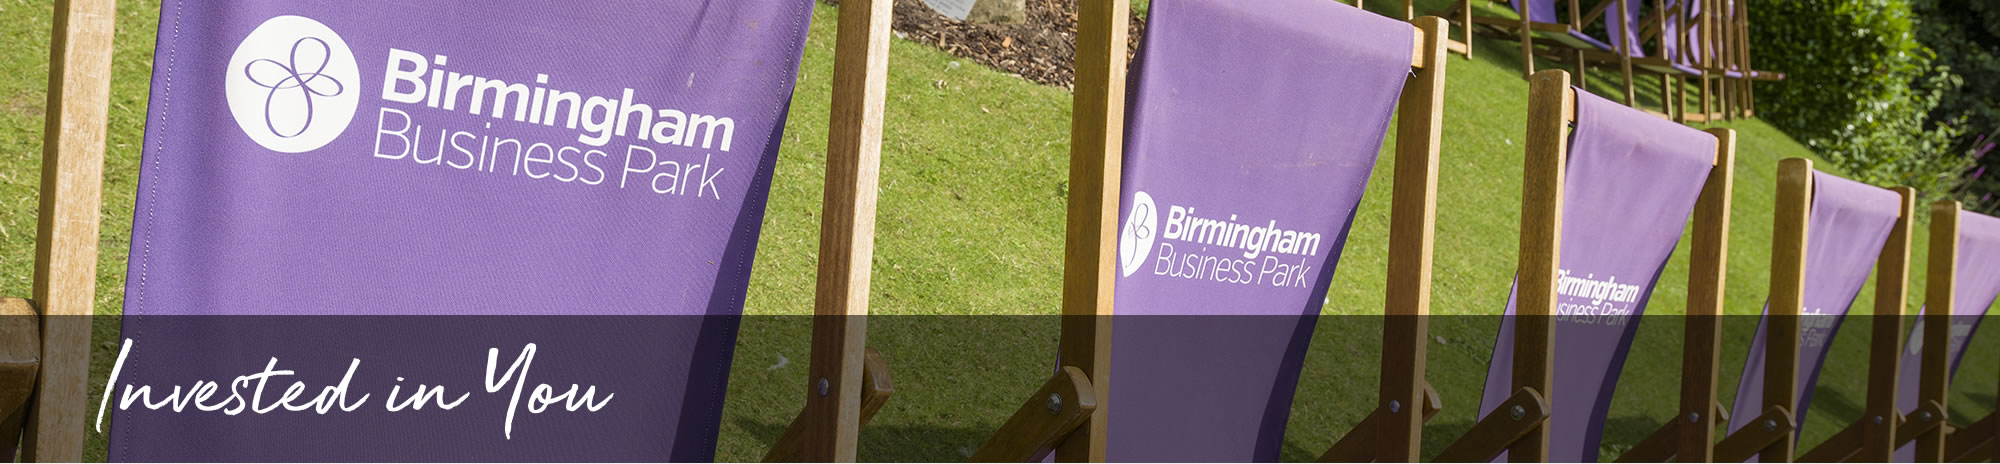 Birmingham Business Park - Invested in you